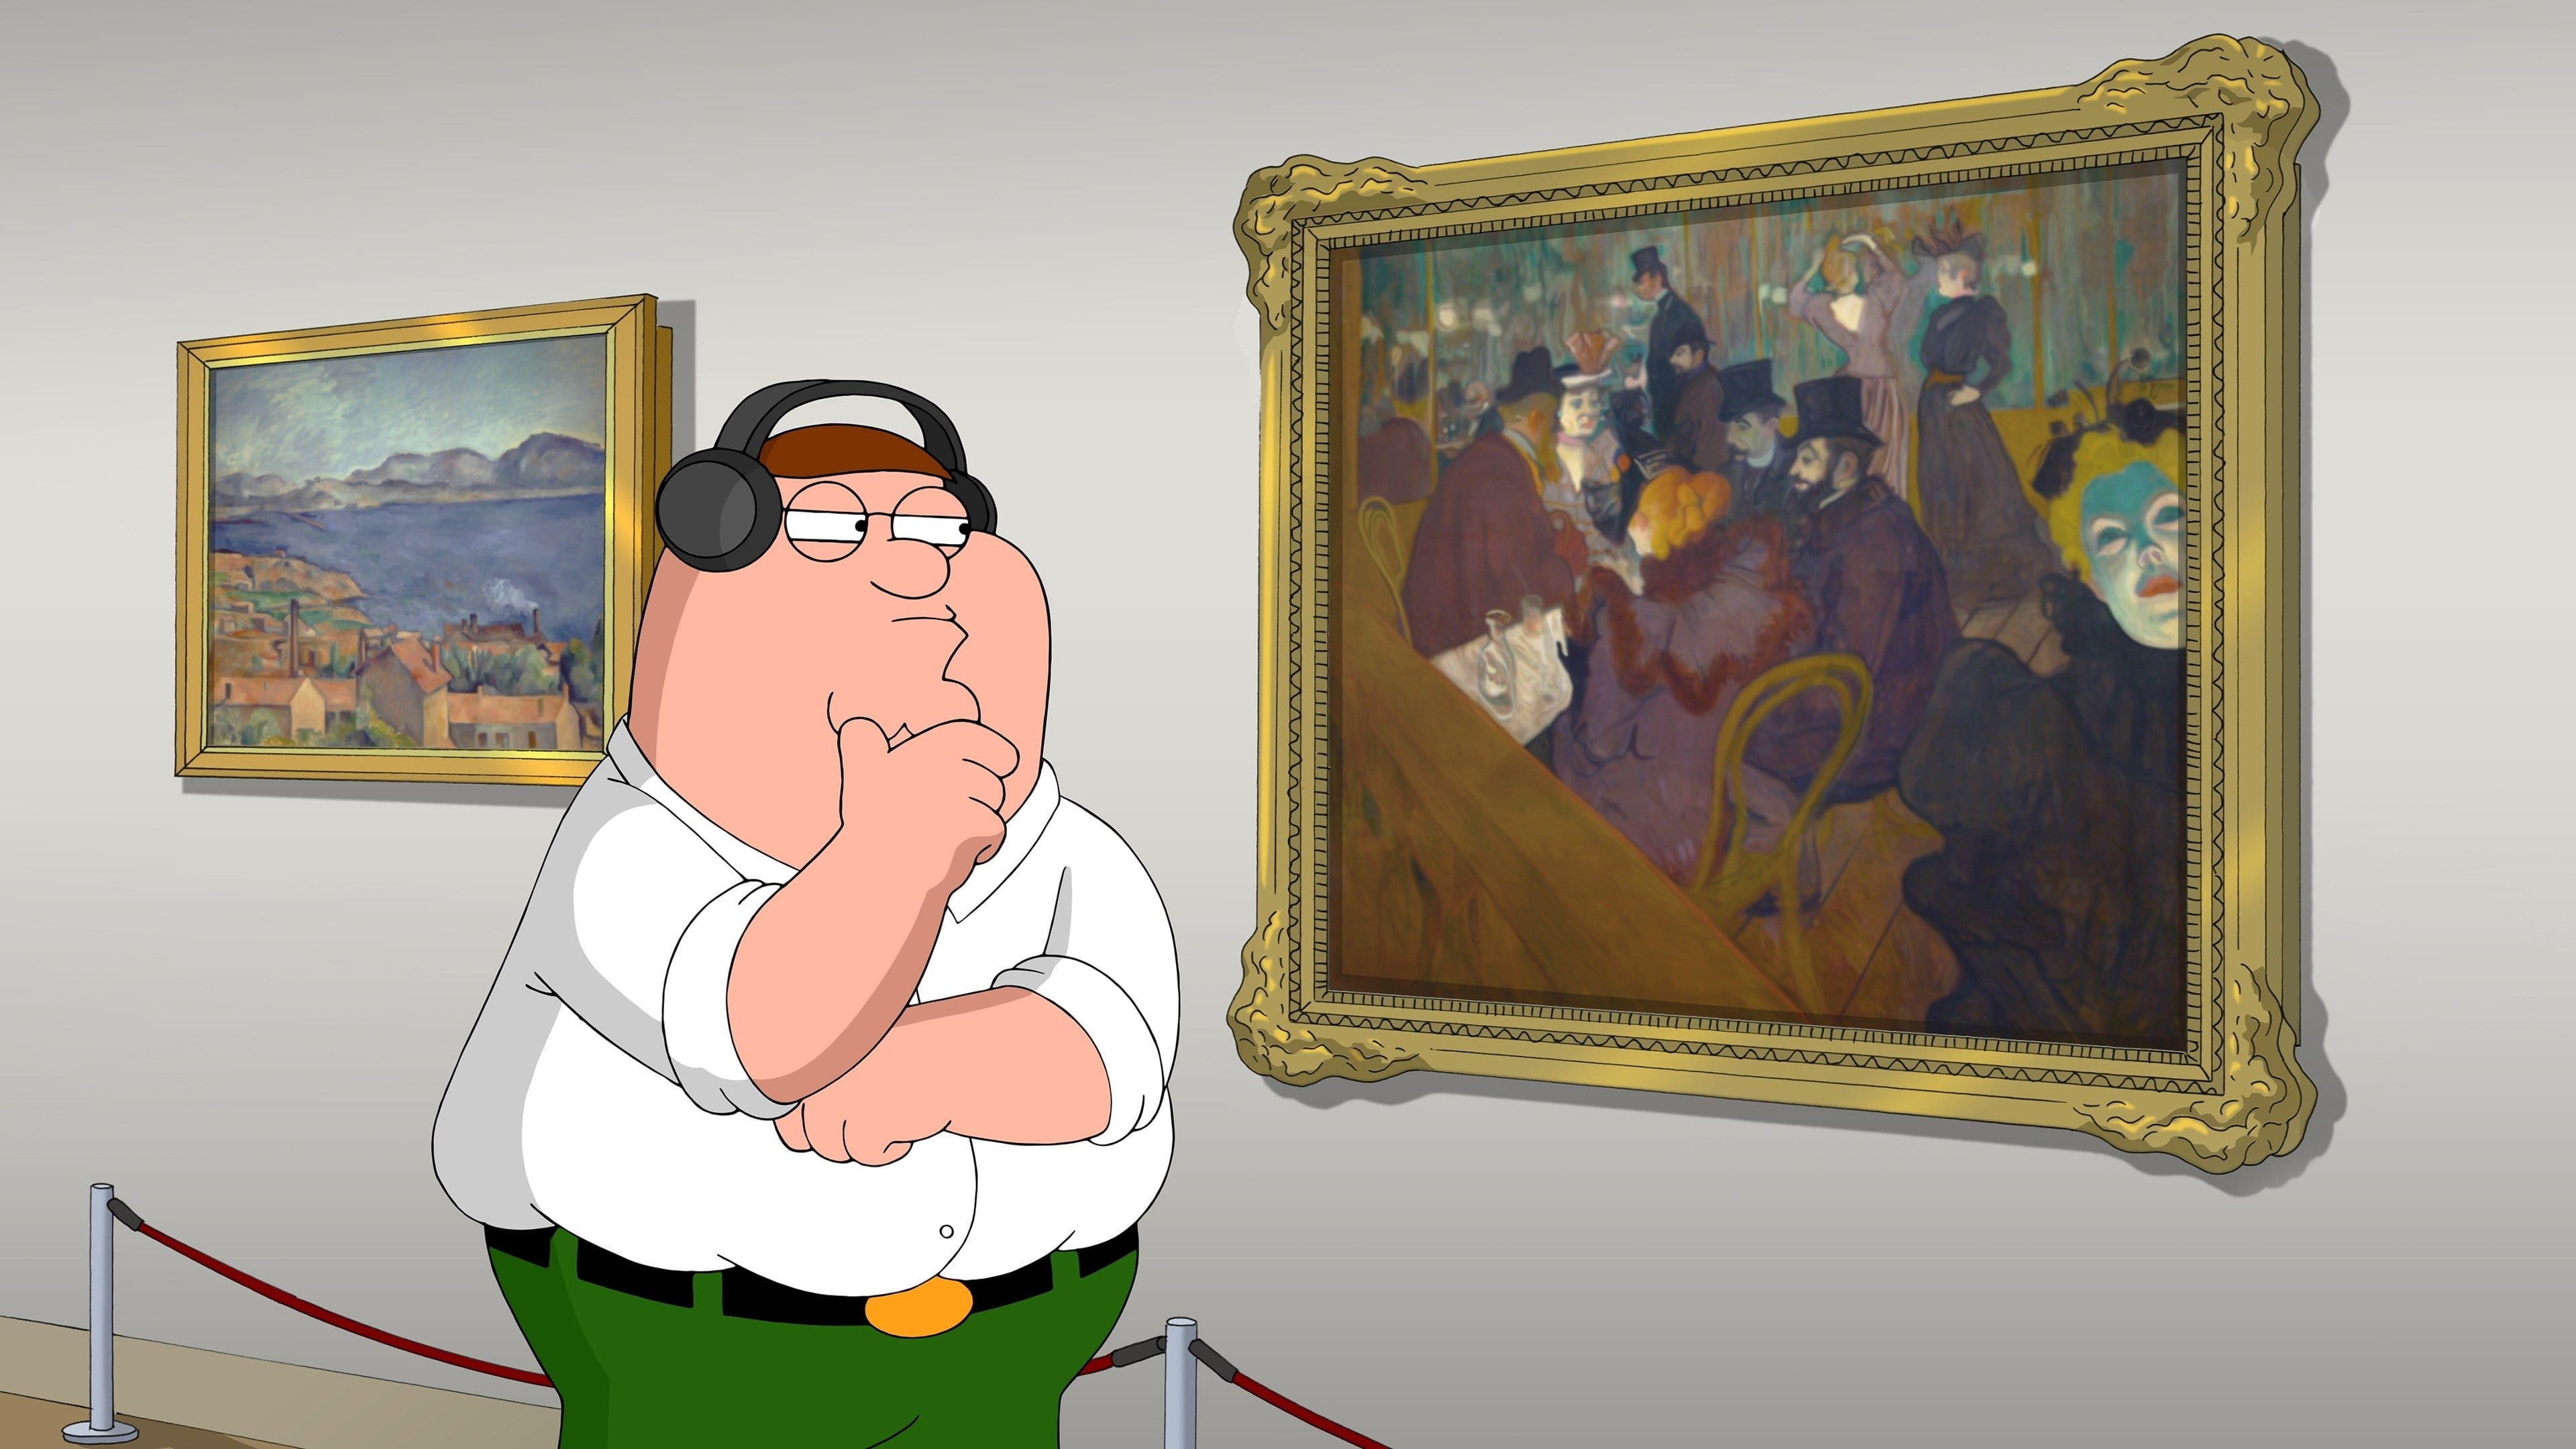 Family Guy - Season 12 Episode 17 : The Most Interesting Man in the World